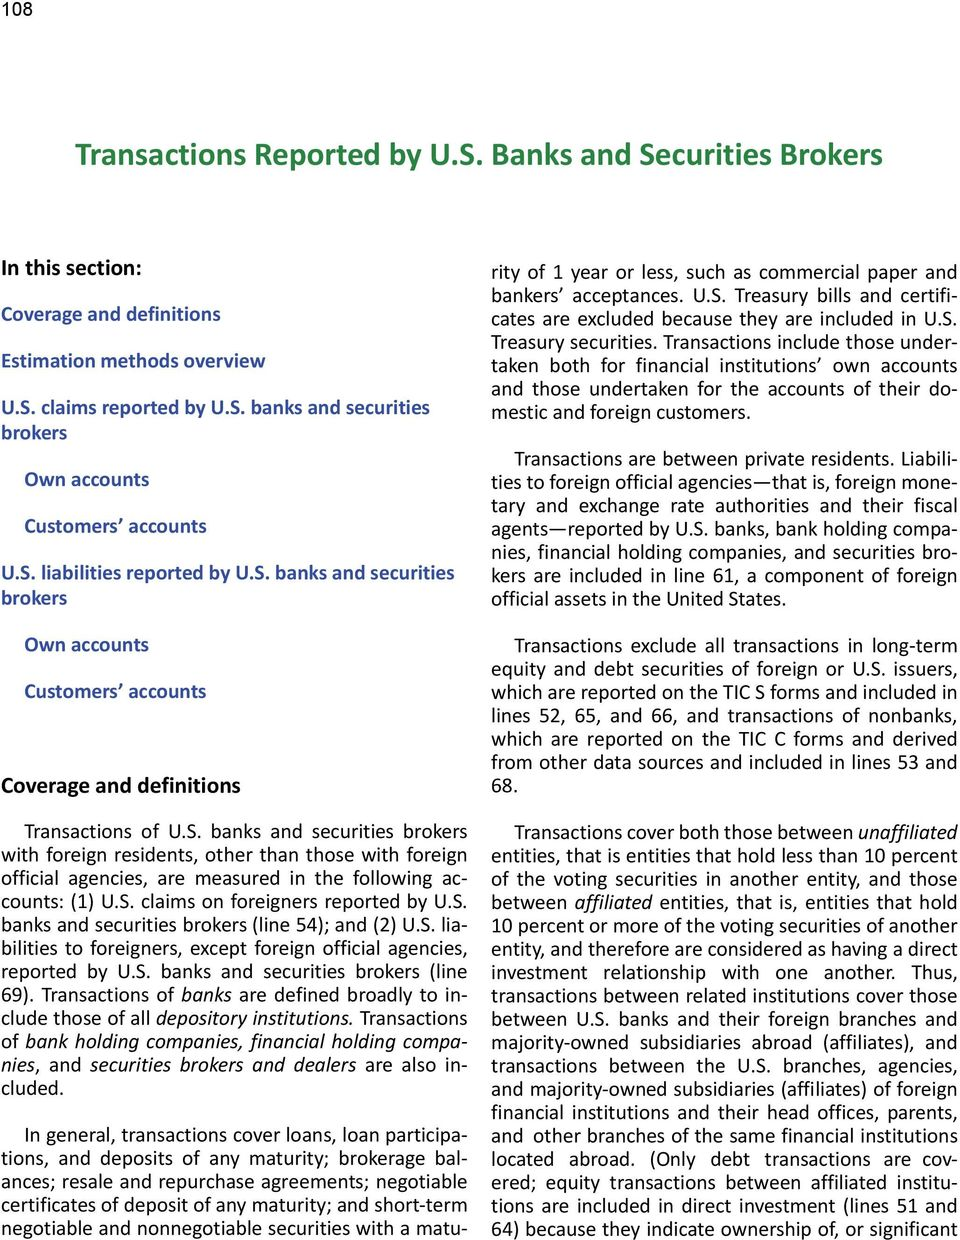 S. claims on foreigners reported by U.S. banks and securities brokers (line 54); and (2) U.S. liabilities to foreigners, except foreign official agencies, reported by U.S. banks and securities brokers (line 69).